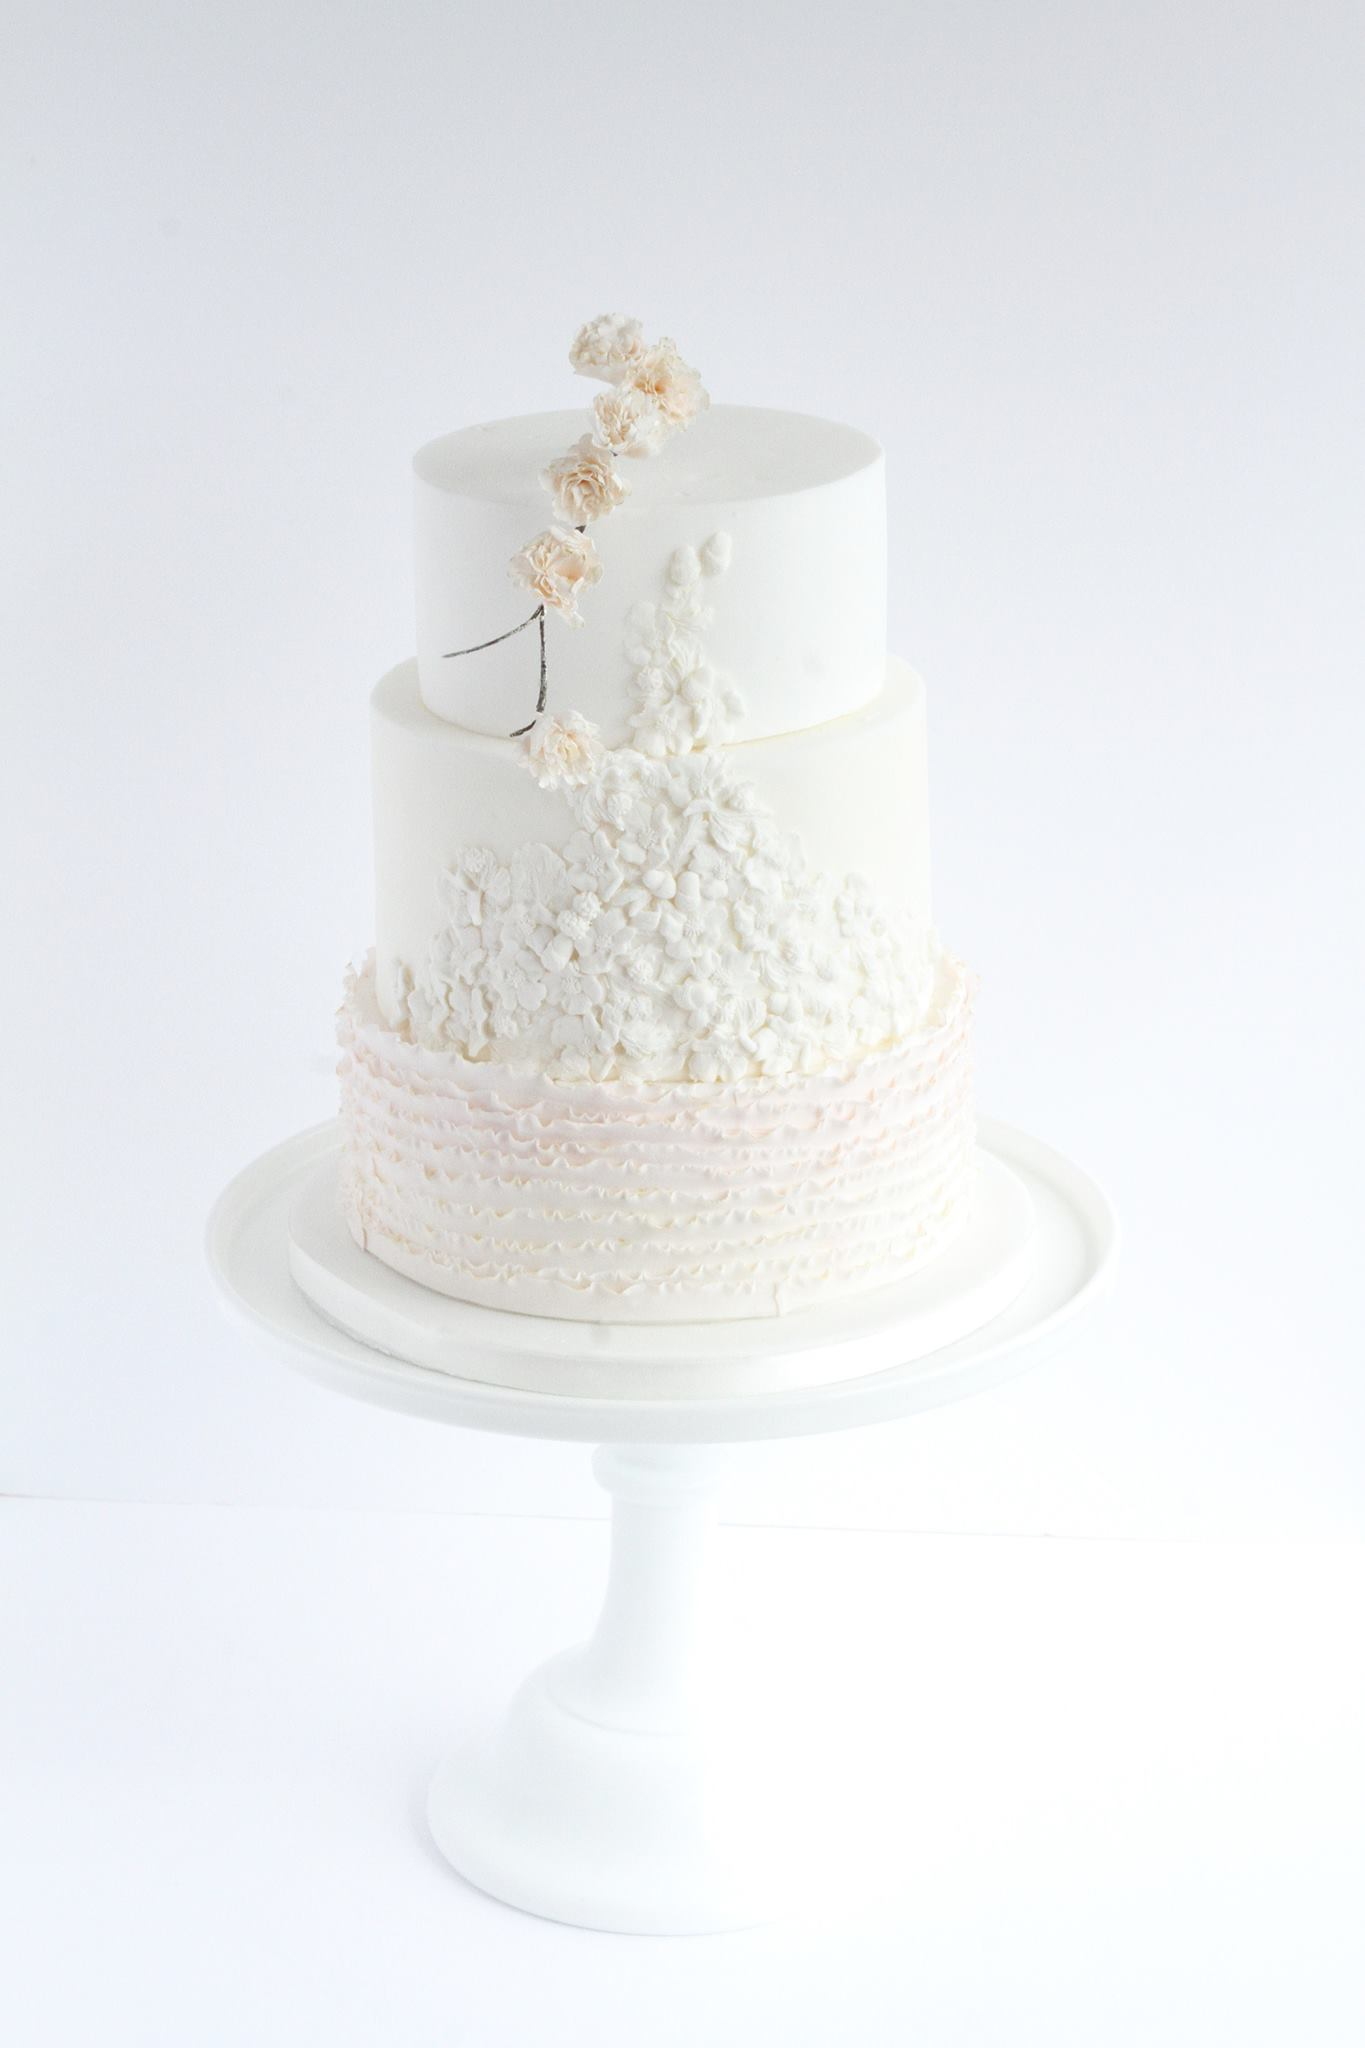 White and Light pink ombre wedding